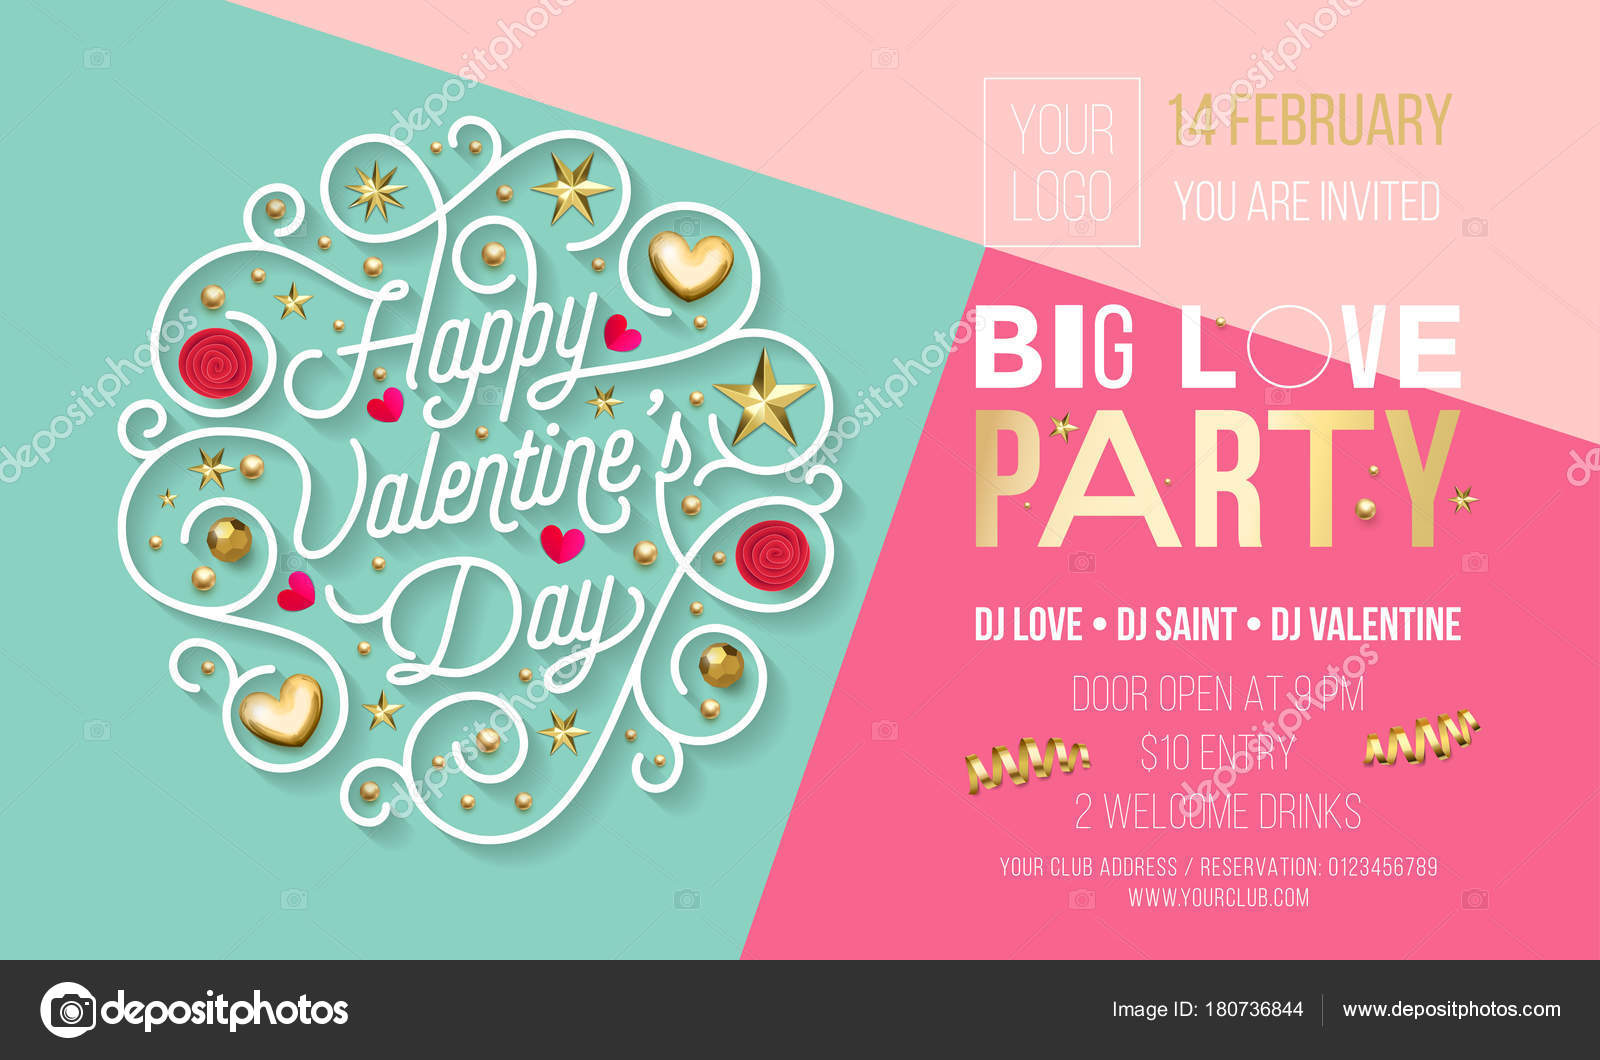 Valentine Day party invitation design template of golden text and ...